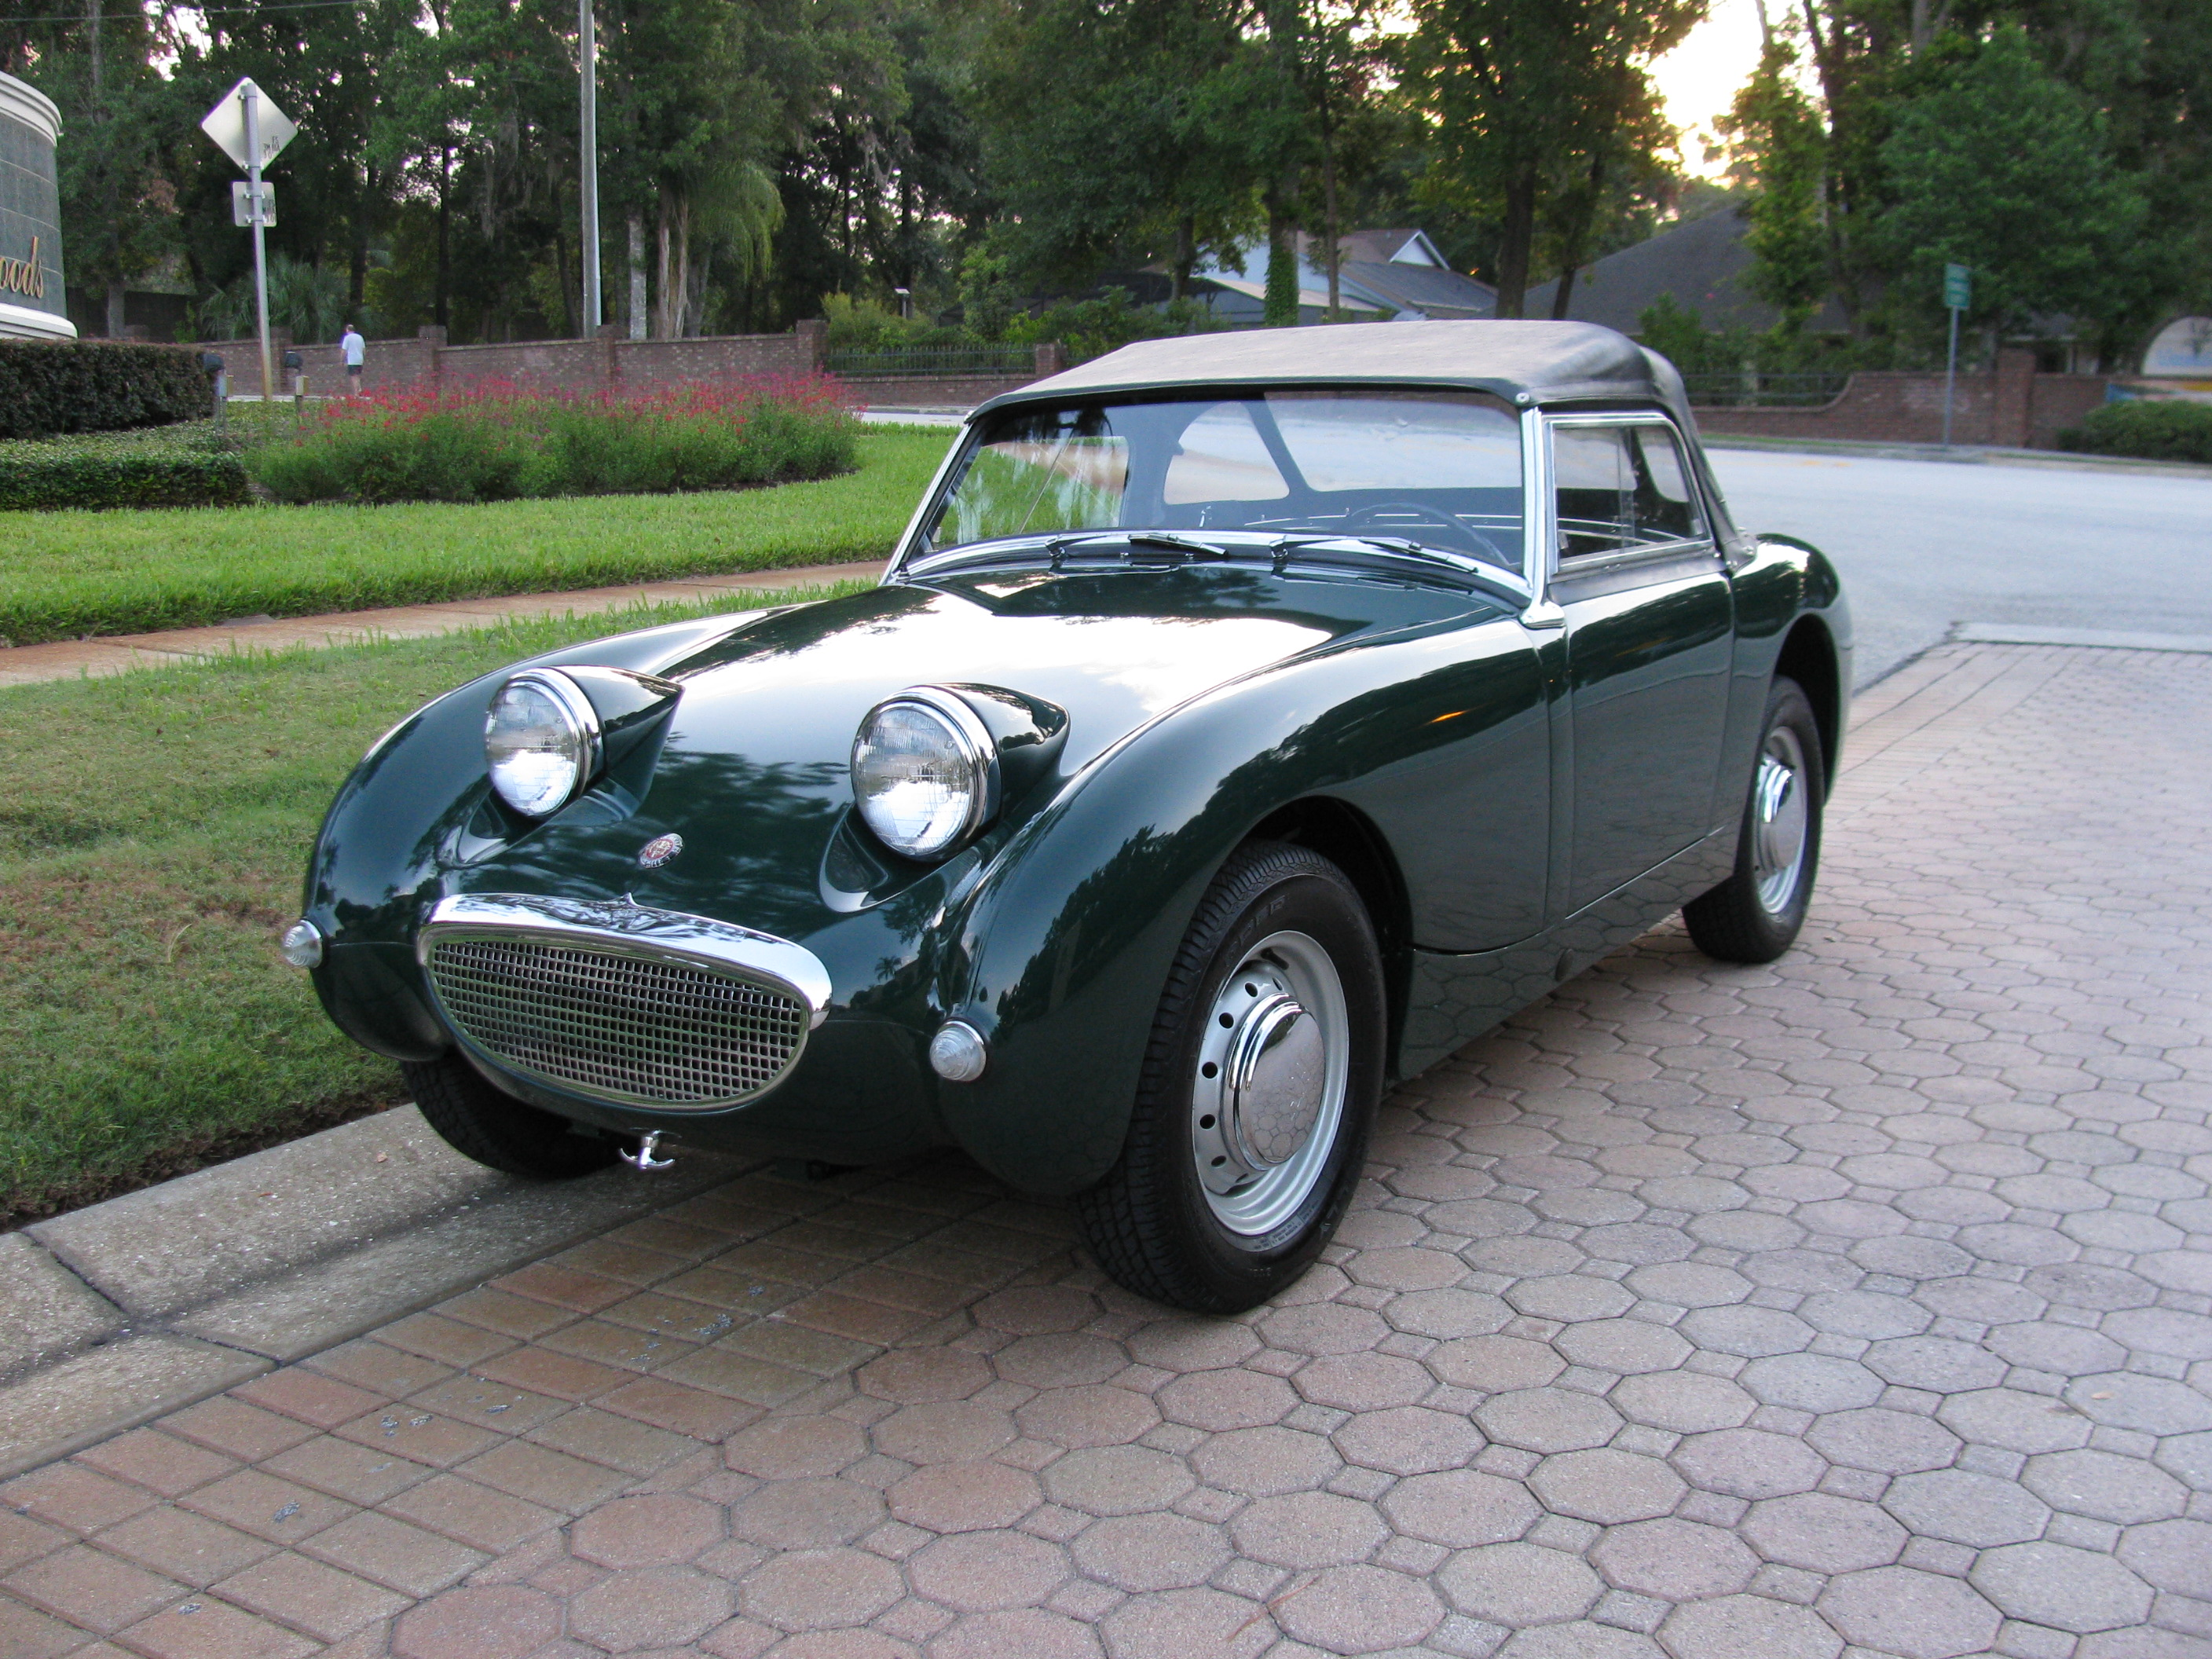 1961 Austin Healey Bugeye Sprite   SOLD    Vantage Sports Cars     1961 Austin Healey Bugeye Sprite   SOLD    Vantage Sports Cars   Vantage  Sports Cars